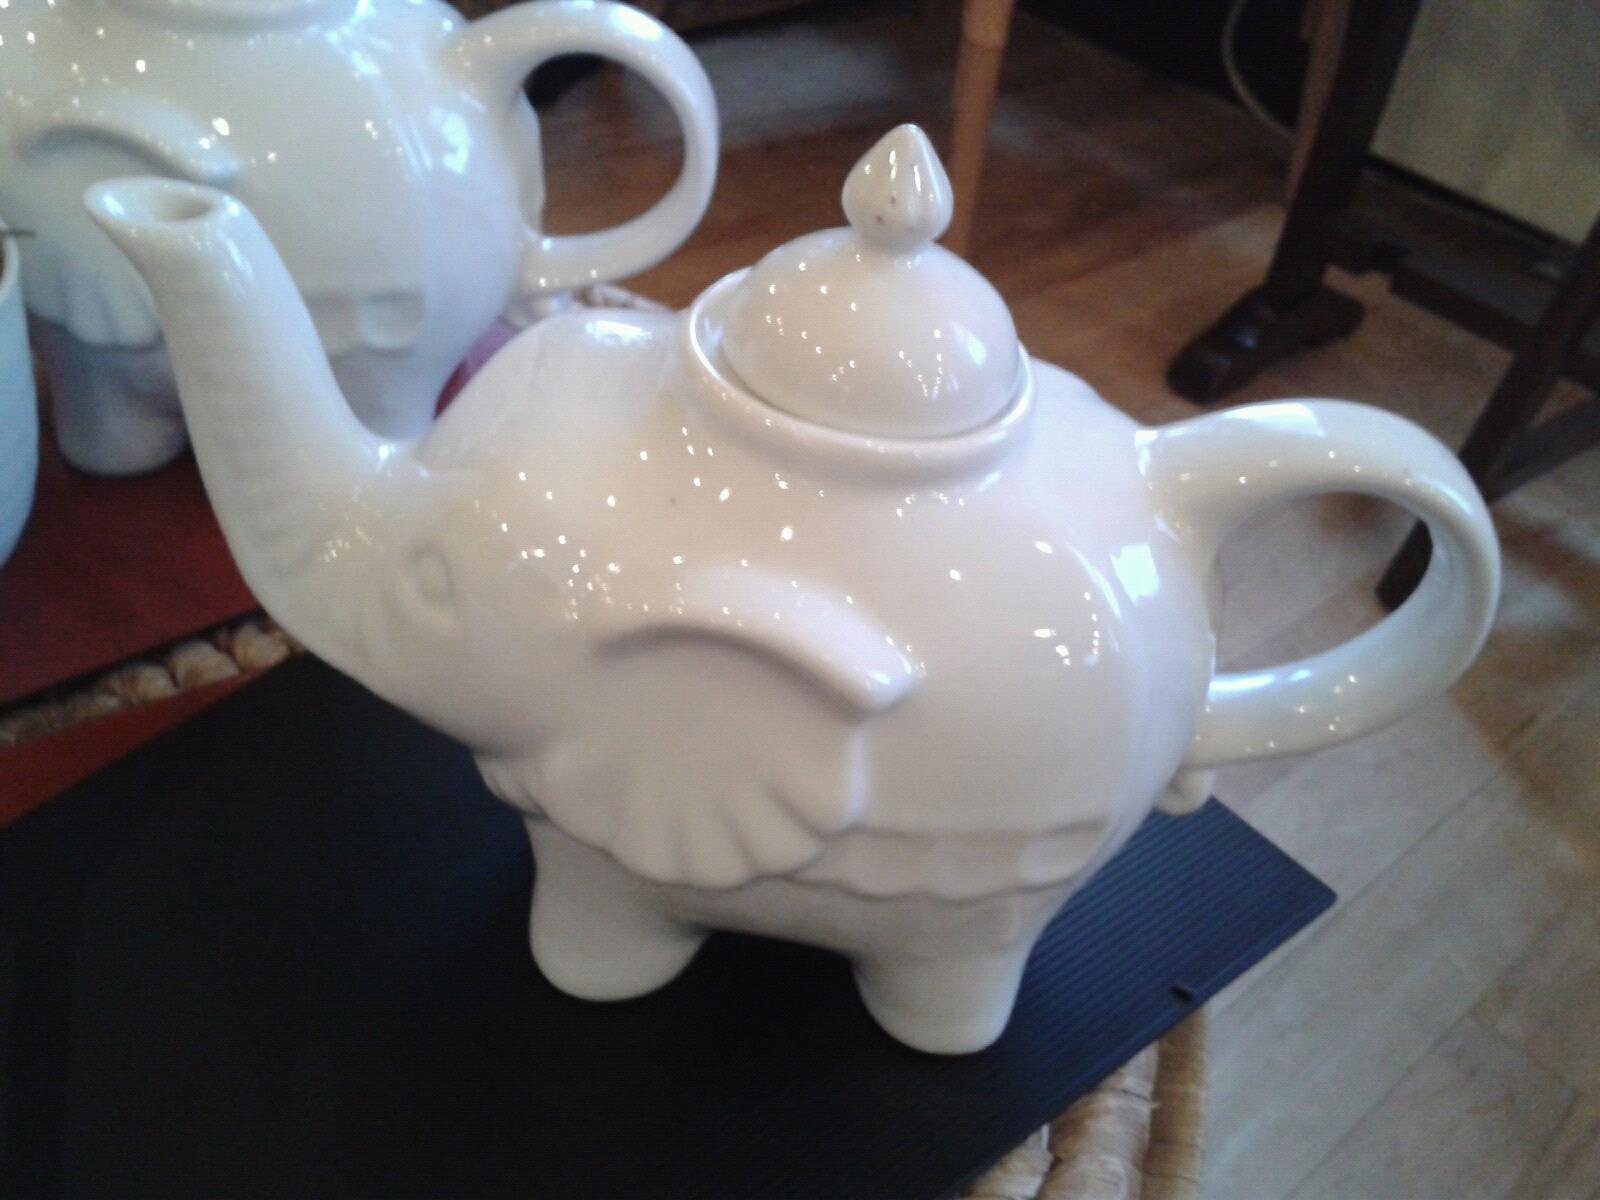 Little miss delicious i wish all tea came in elephant shaped teapots - Elephant shaped teapot ...